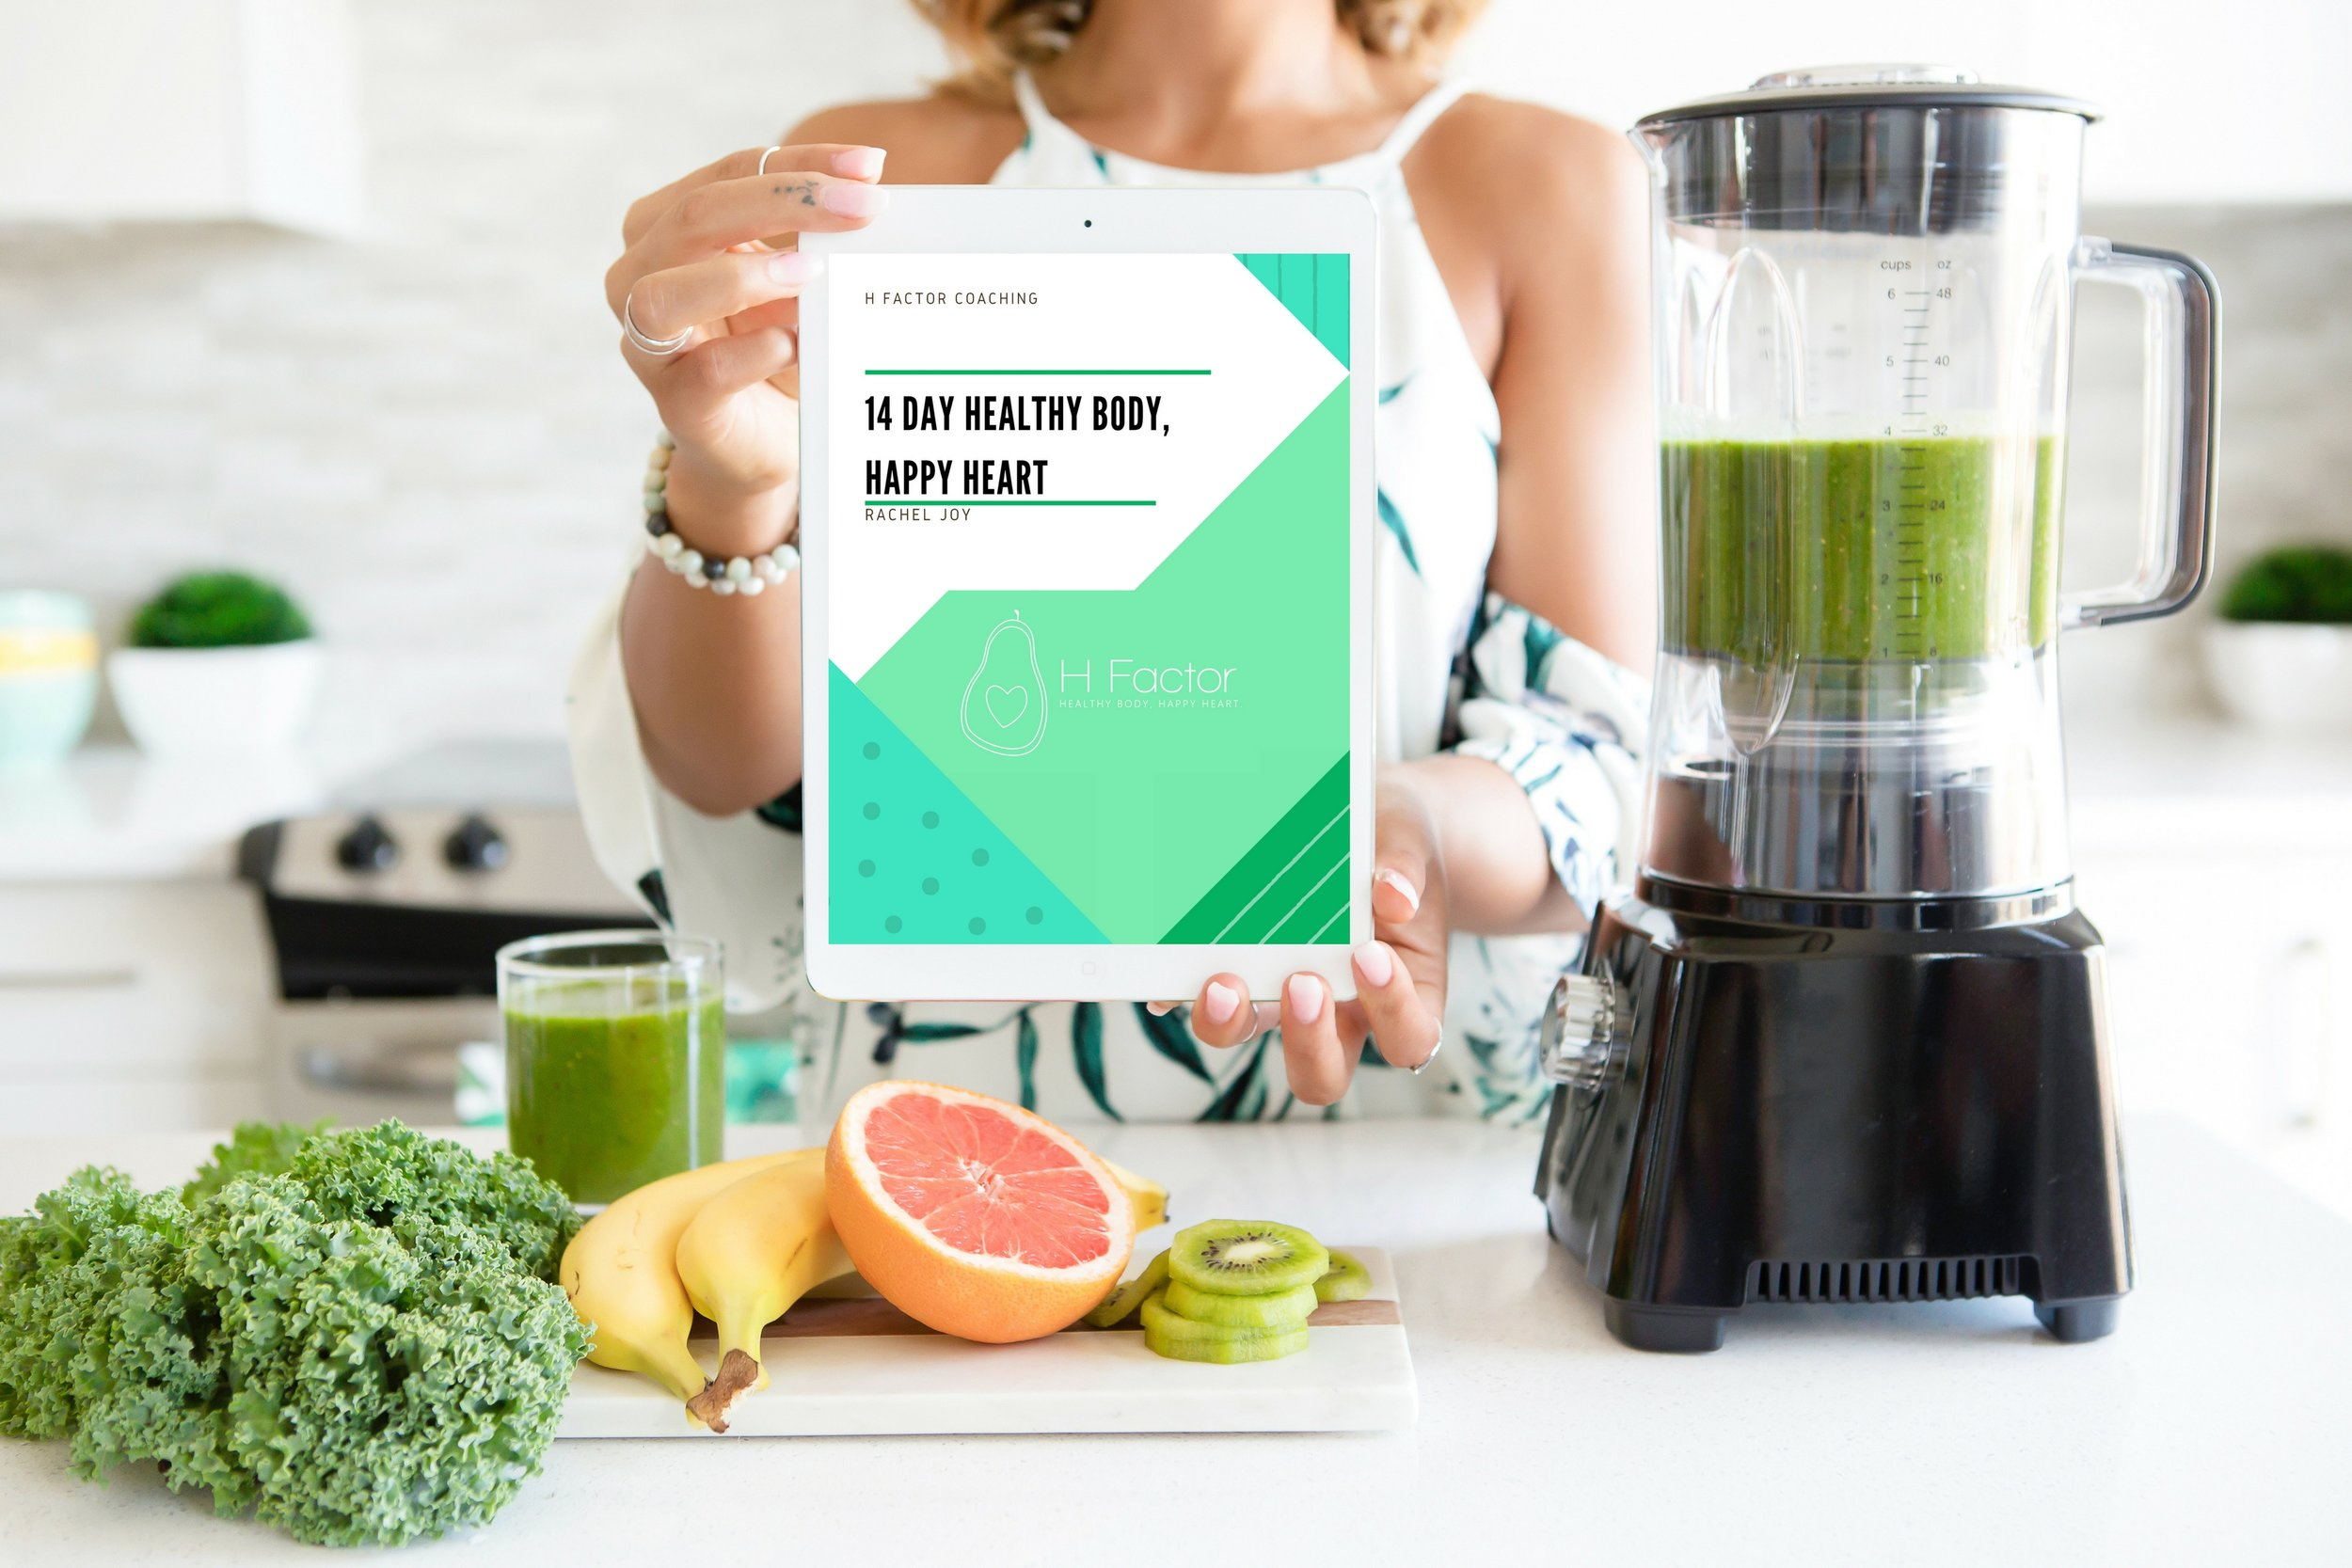 !4 Day Healthy Body, Happy Heart - I am beyond excited to share this 14 day challenge with you! This isn't like your typical fitness guide. Each day is jam packed with a meal plan and recipes to follow, a workout, inspirational quotes to think about, and a daily journaling prompt that promotes self love, and forces you to bust through those blocks so you can transcend to your highest self! Get the first 3 days FREE! If you like it, you can enjoy the rest of the package for just $1 a day! Enter email below to get your copy now.